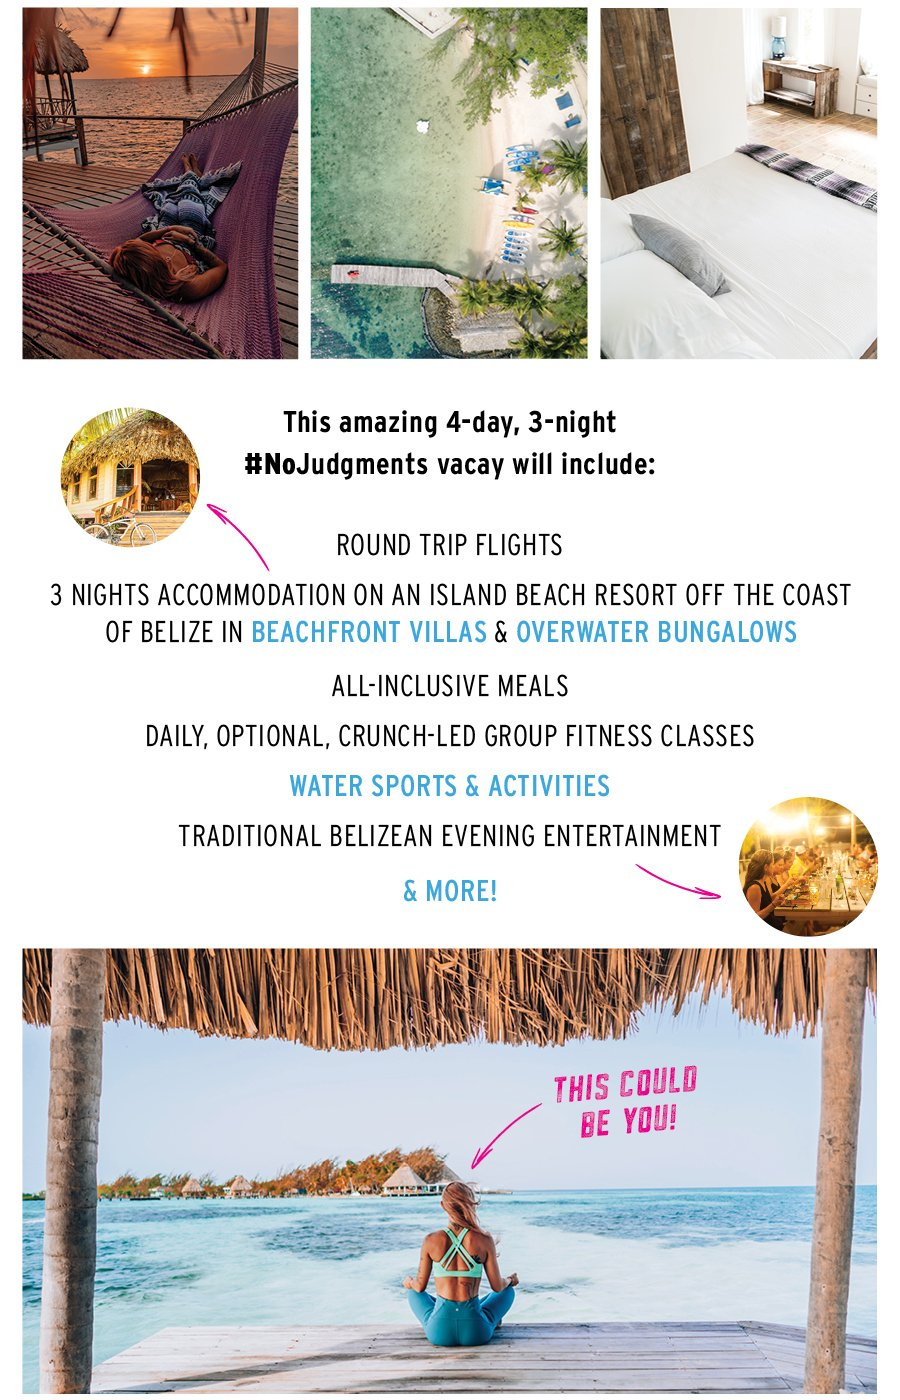 This amazing 4-day, 3-night, No Judgments vacay will include: round trip flights, 3 nights accommodation on an island beach resort off the coast of Belize in beachfront villas & overwater bungalows, all inclusive meals. Daily, optional, crunch-led group fitness classes, water sports & activities, traditional Belizean evening entertainment and more.